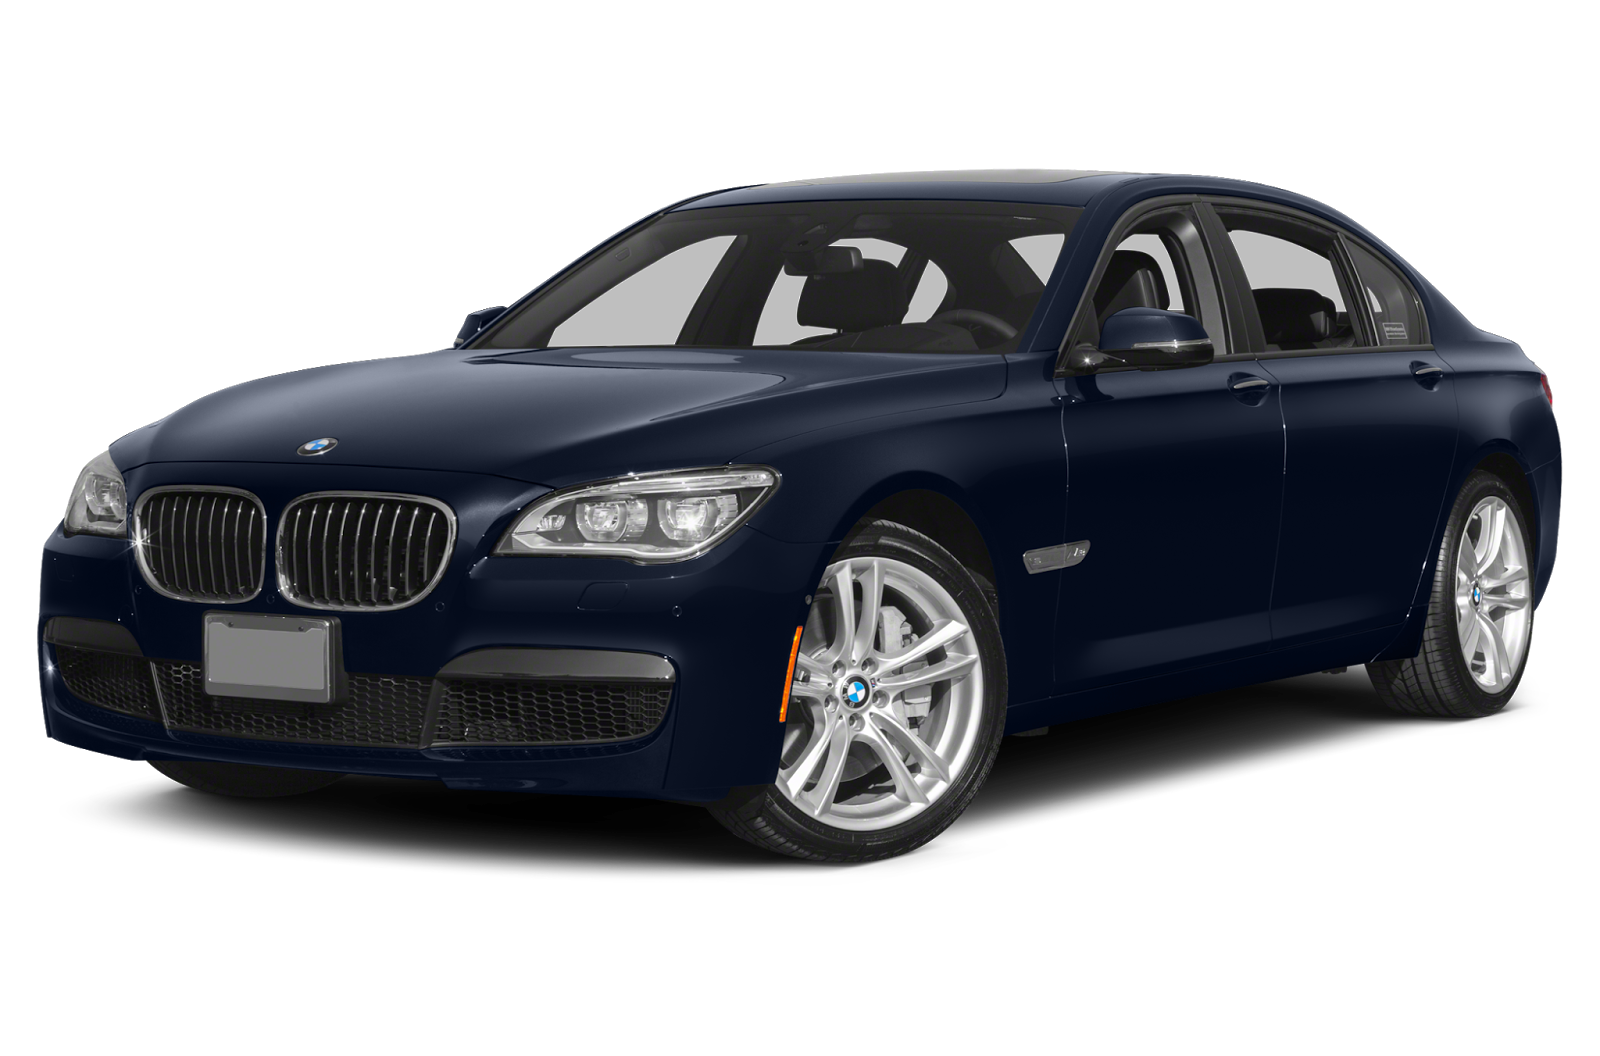 2015 BMW 760 High Resolution Pictures